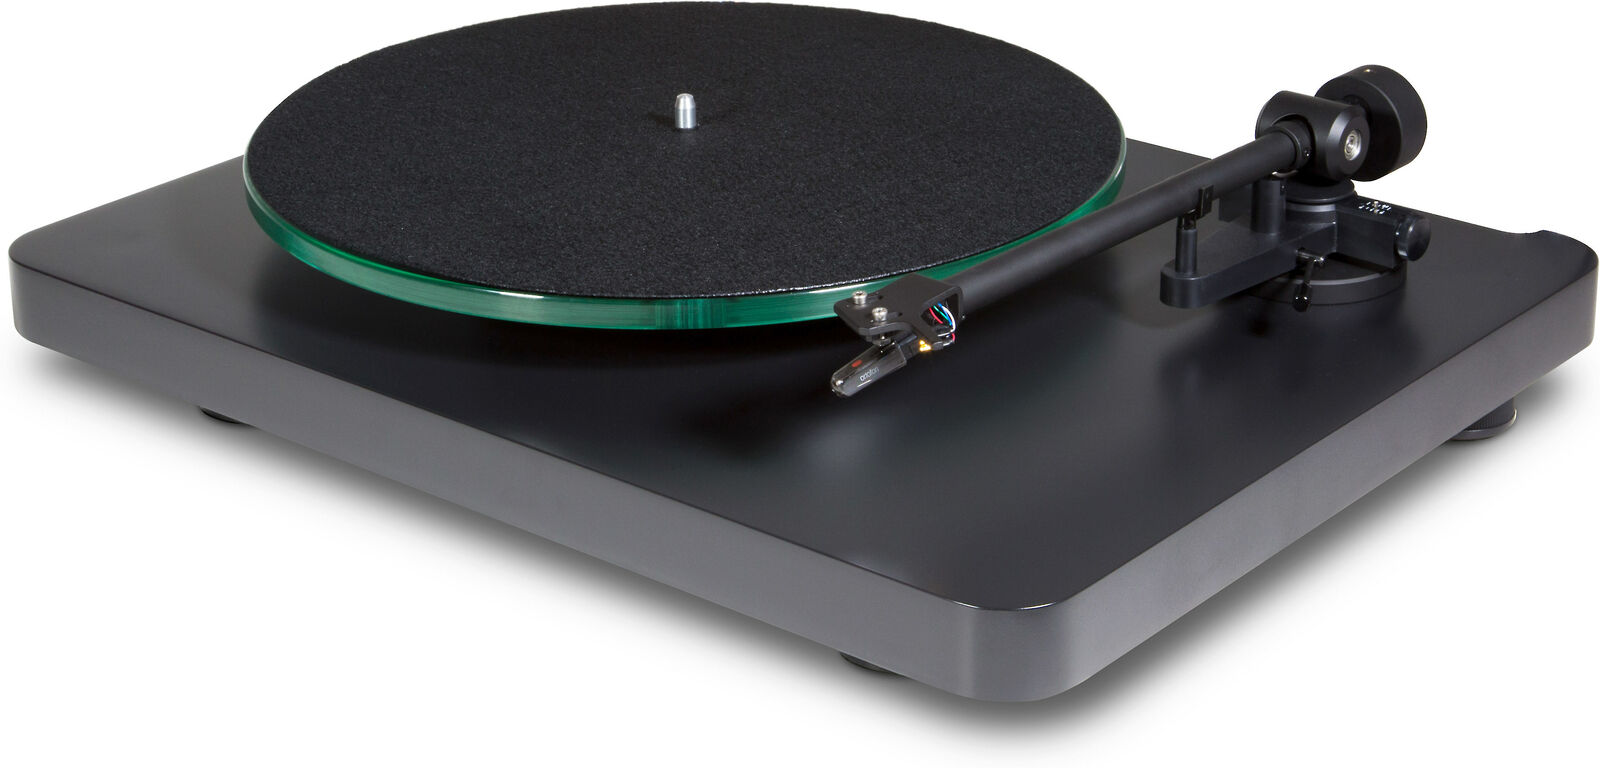 NAD C558 turntable with cartridge. Buy it now for 549.00